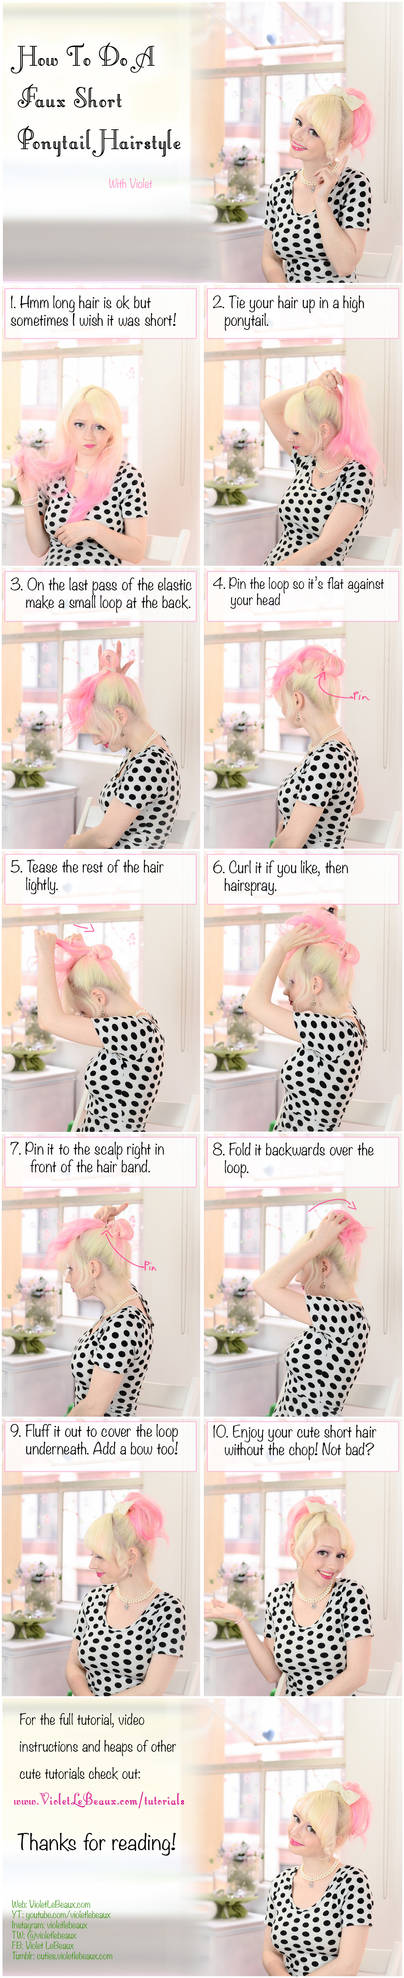 Faux Mini Ponytail Hairstyle Tutorial by VioletLeBeaux